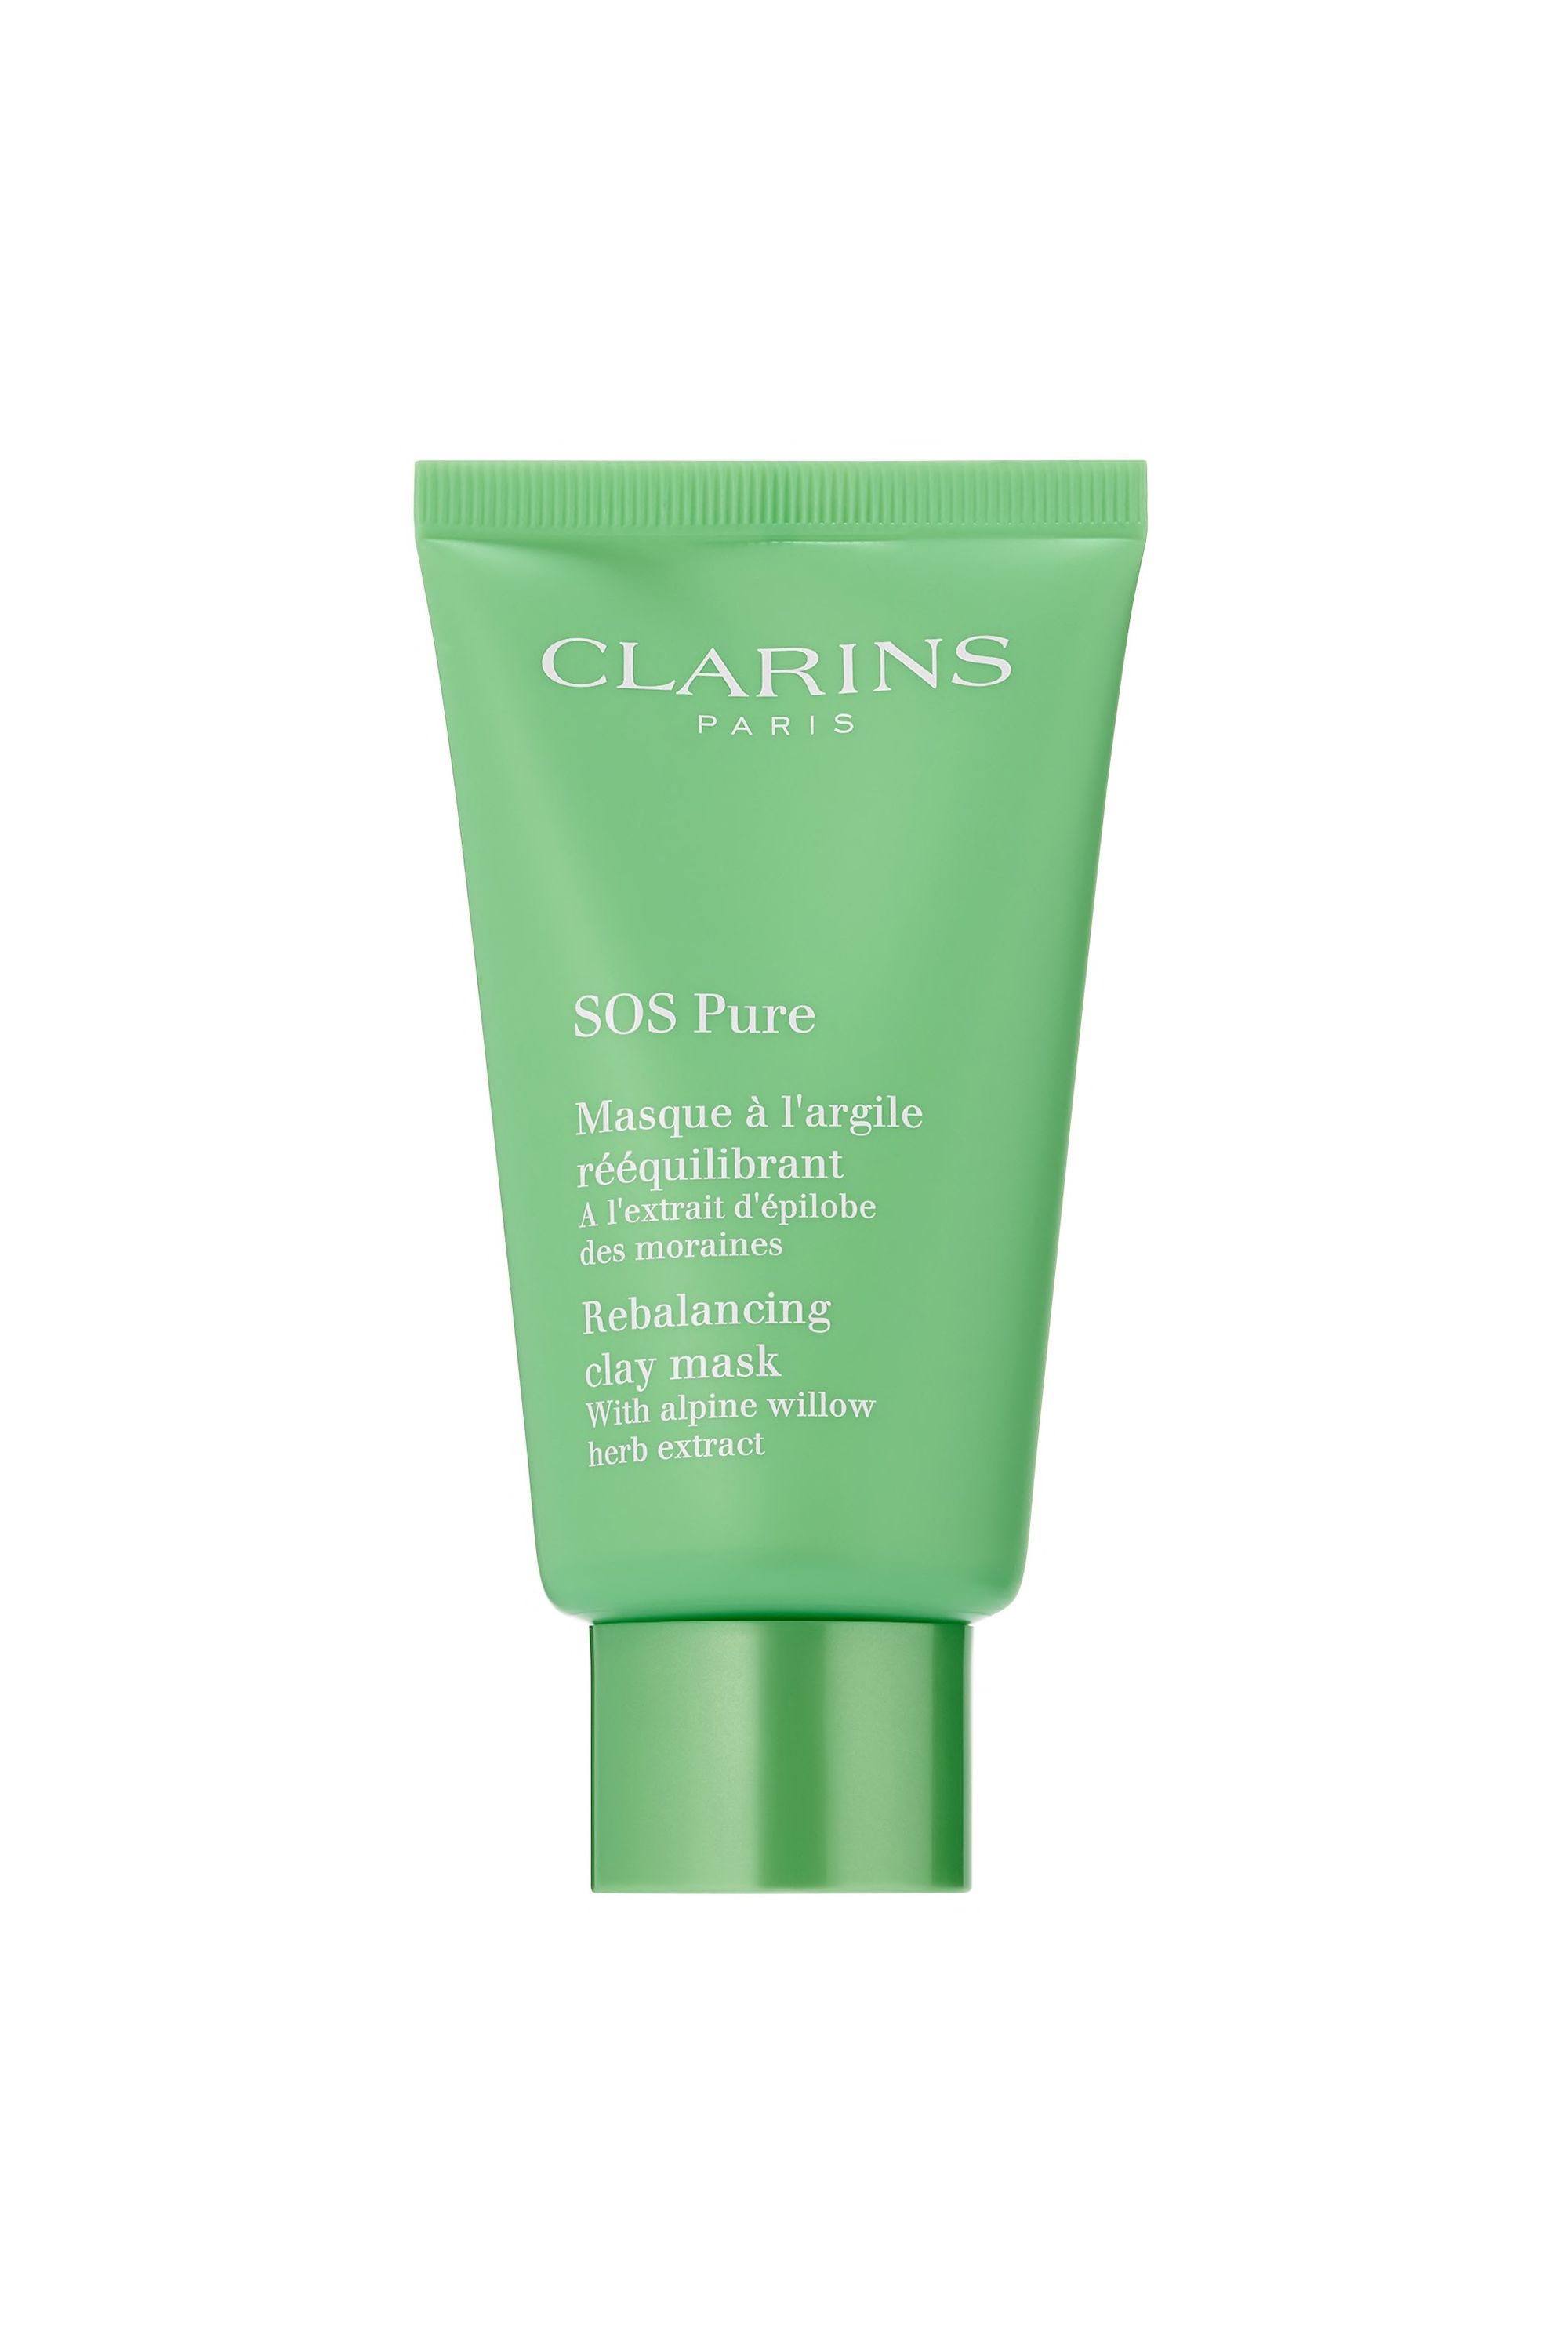 SOS Pure Rebalancing Clay Mask Clarins sephora.com $34.00 SHOP NOW This purifying face mask is ideal for oily or combination skin types because it reduces the appearance of pores with the help of both white and green clay. Natural ingredients like alpine willow herb also work to minimizes shine caused by oils and debris.